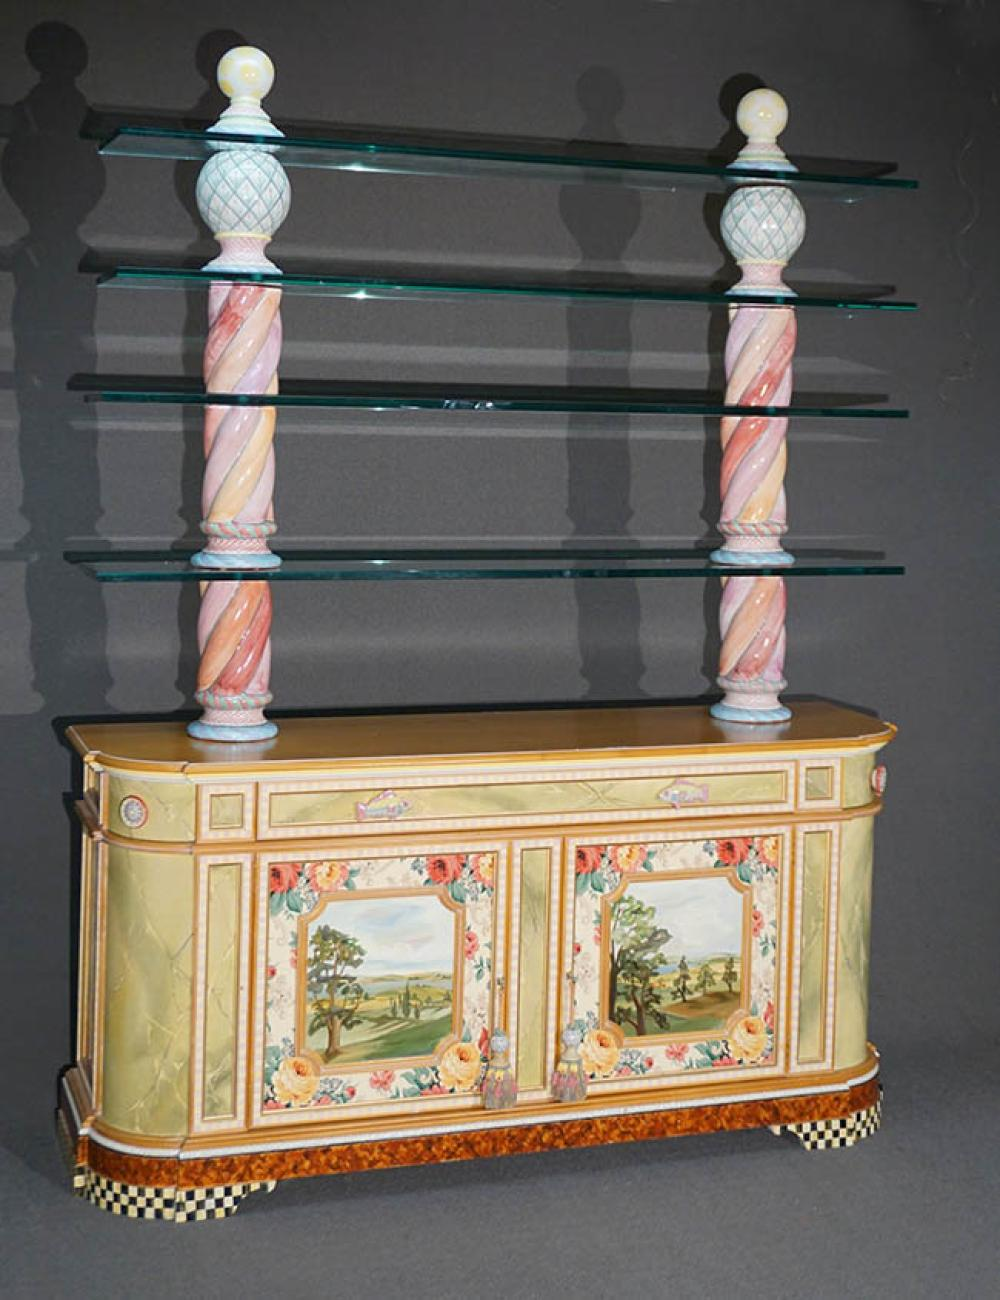 MacKenzie-Childs Painted and Decorated Cherry and Art Pottery Hutch Credenza with Glass Shelves